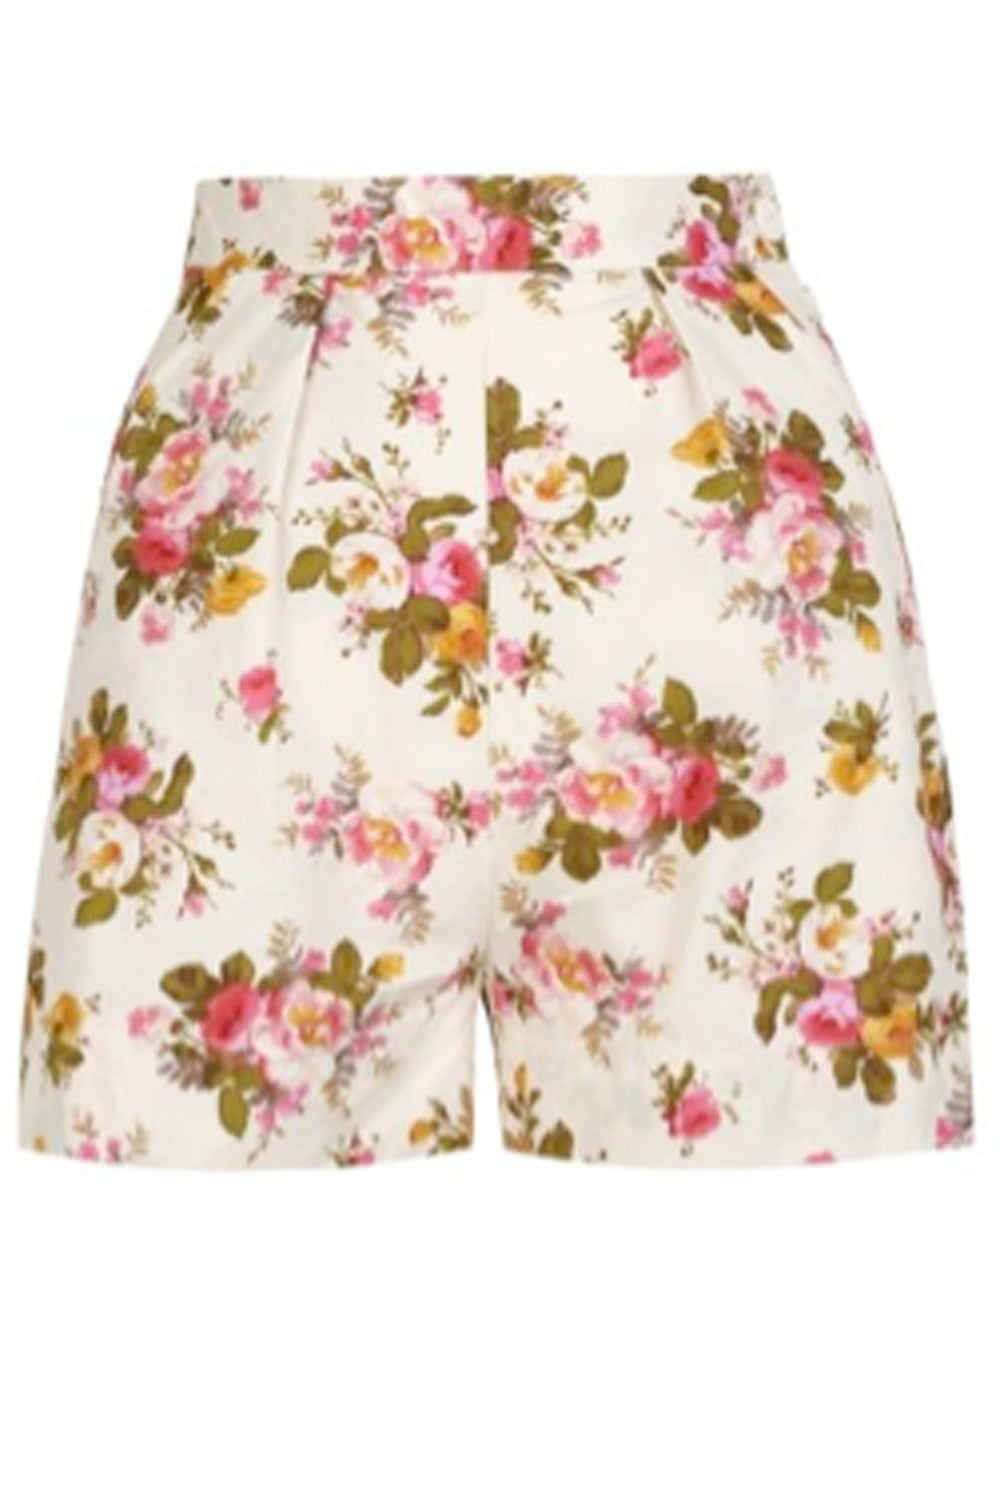 The Printed Shorts - Cream Pink Flowers